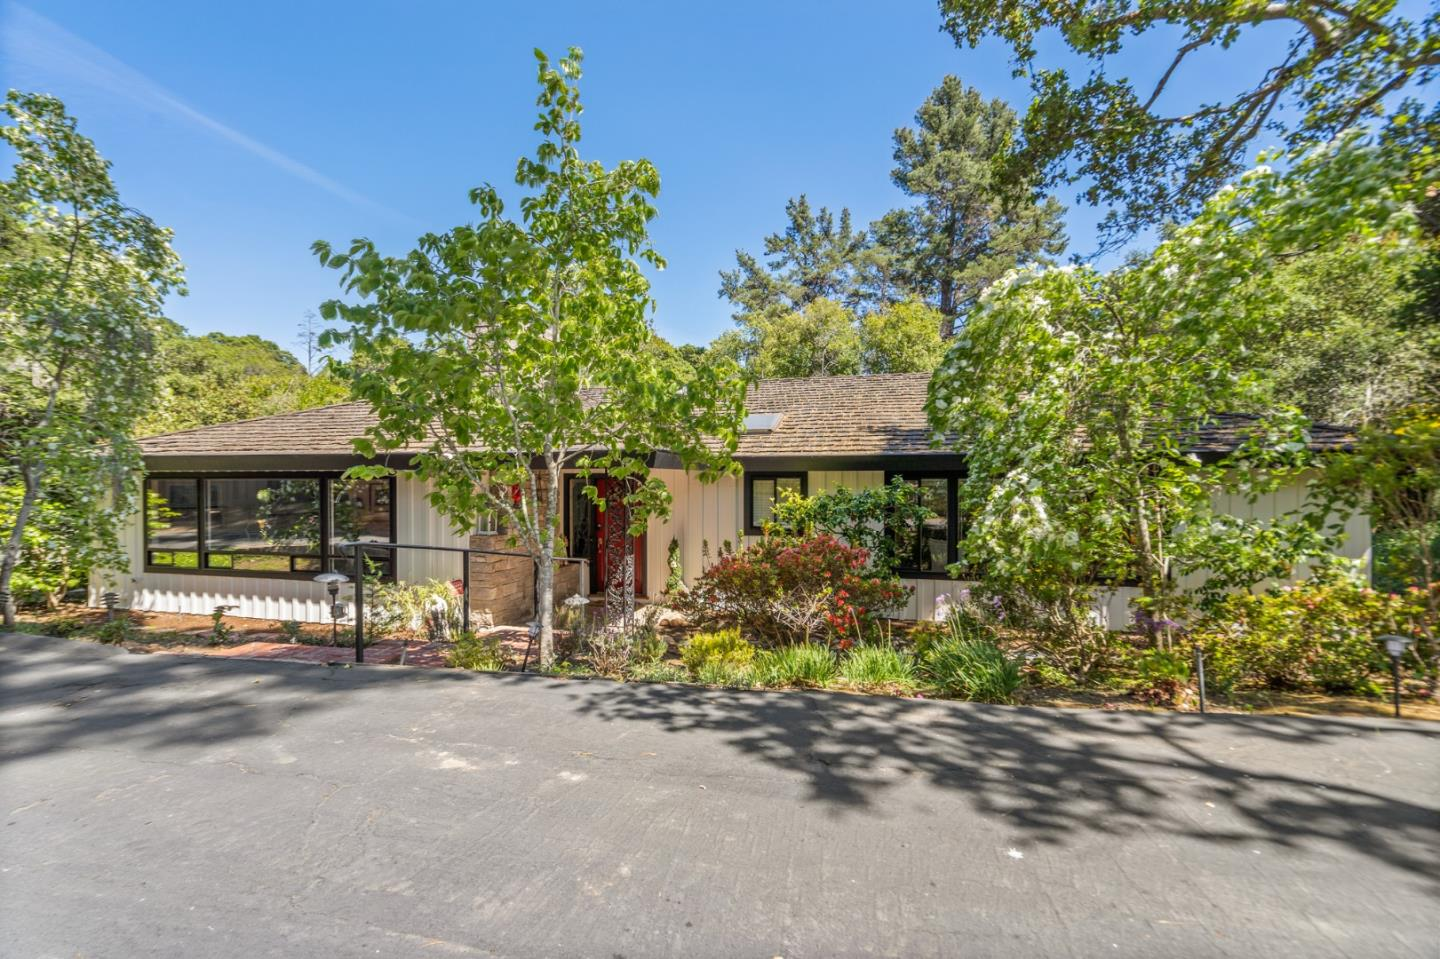 Photo for 400 Moseley RD, HILLSBOROUGH, CA 94010 (MLS # ML81791967)